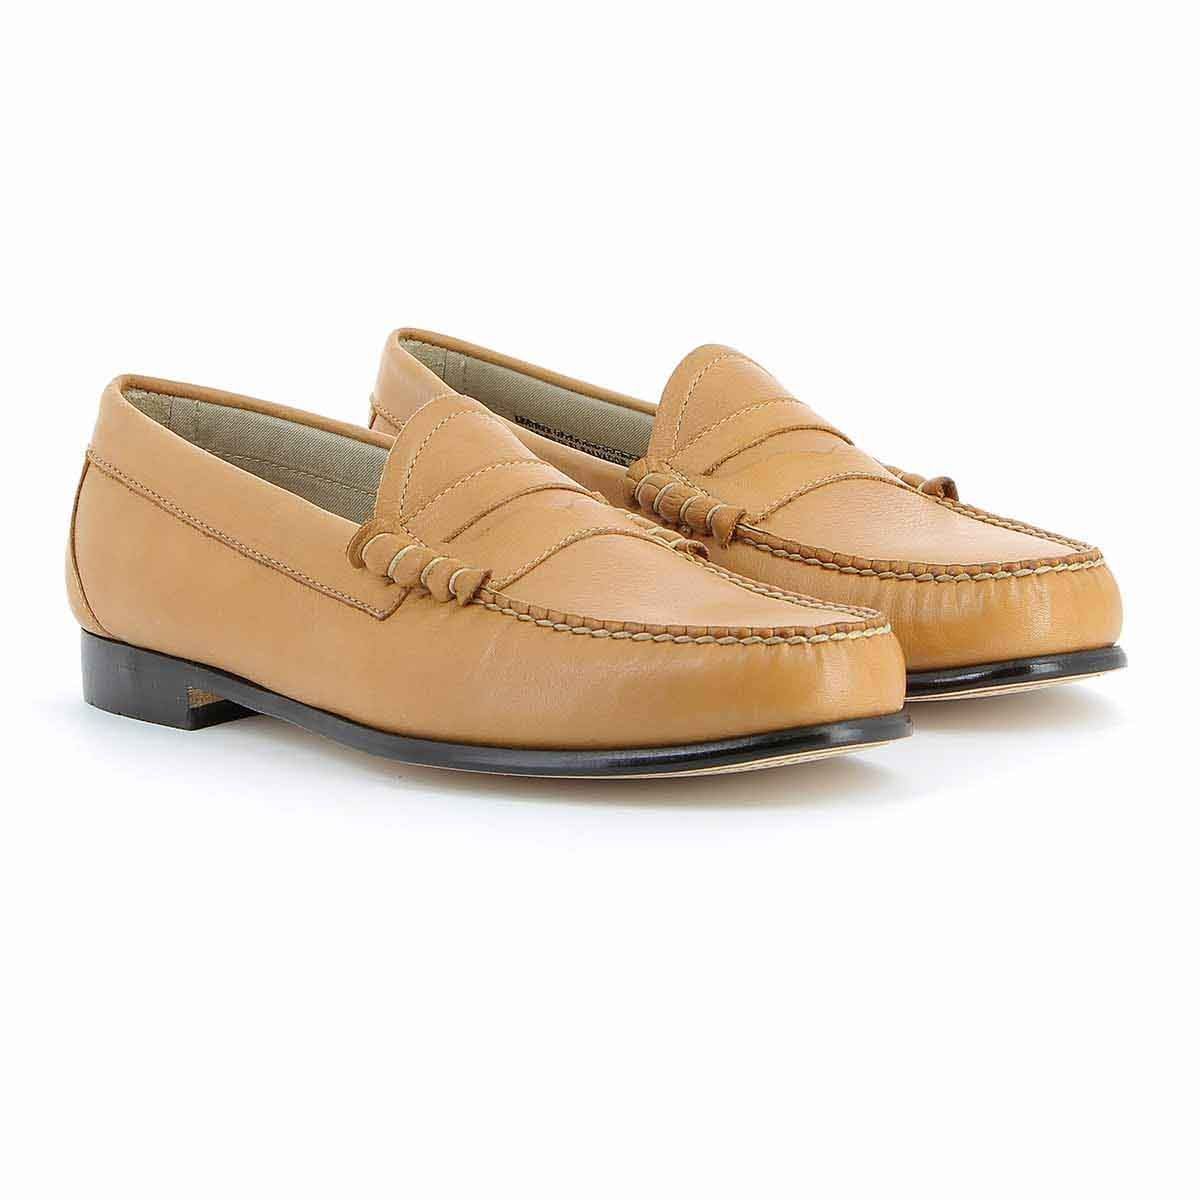 c70df353380 Weejuns Larson Palm Springs Tan Leather Black Polish